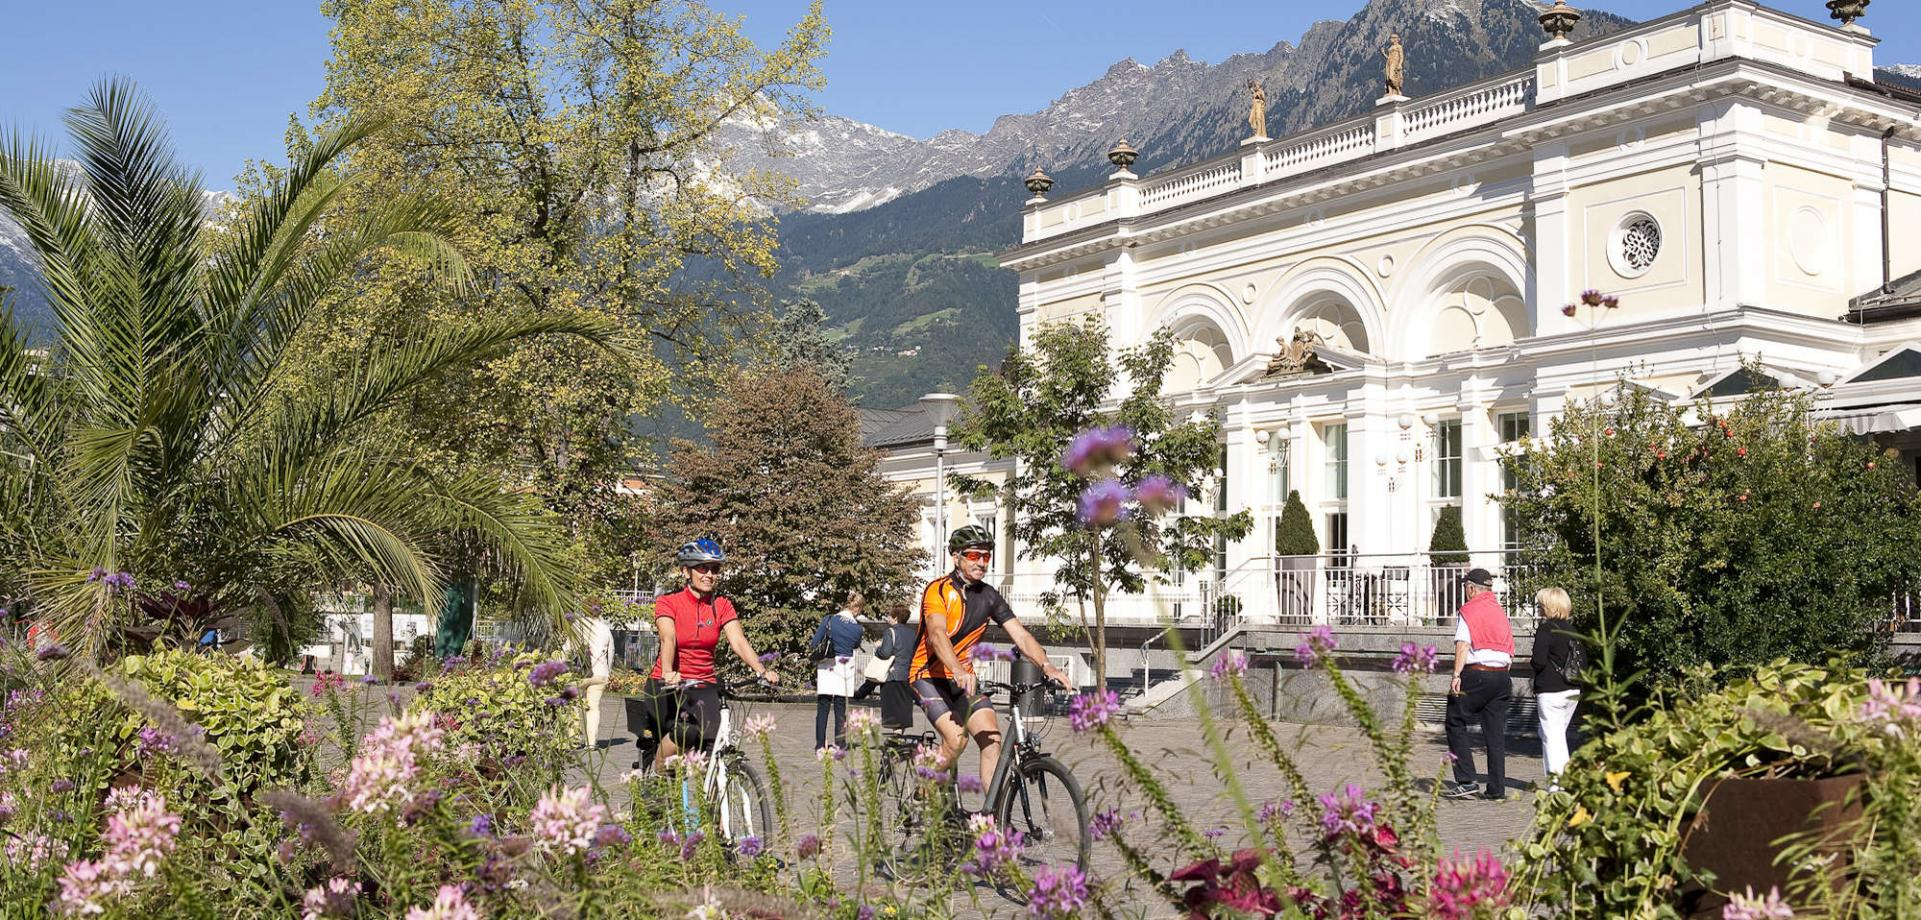 Genussrad Touren in Naturns bei Meran in Südtirol